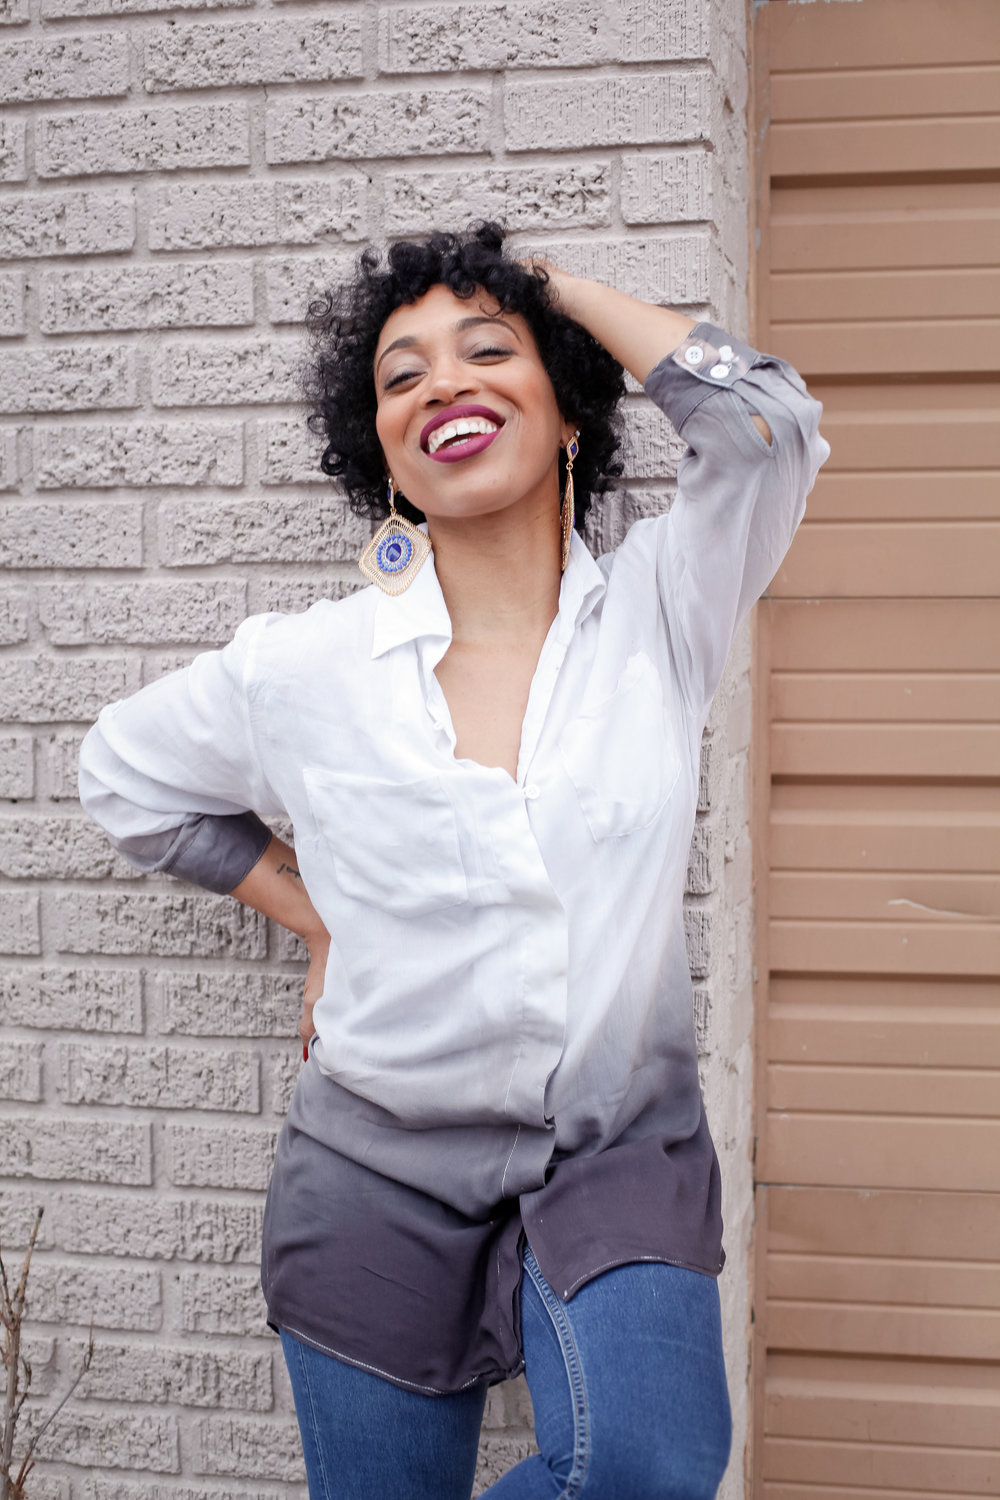 Andrea Fenise Memphis Fashion Blogger shares discovering new looks in 30s